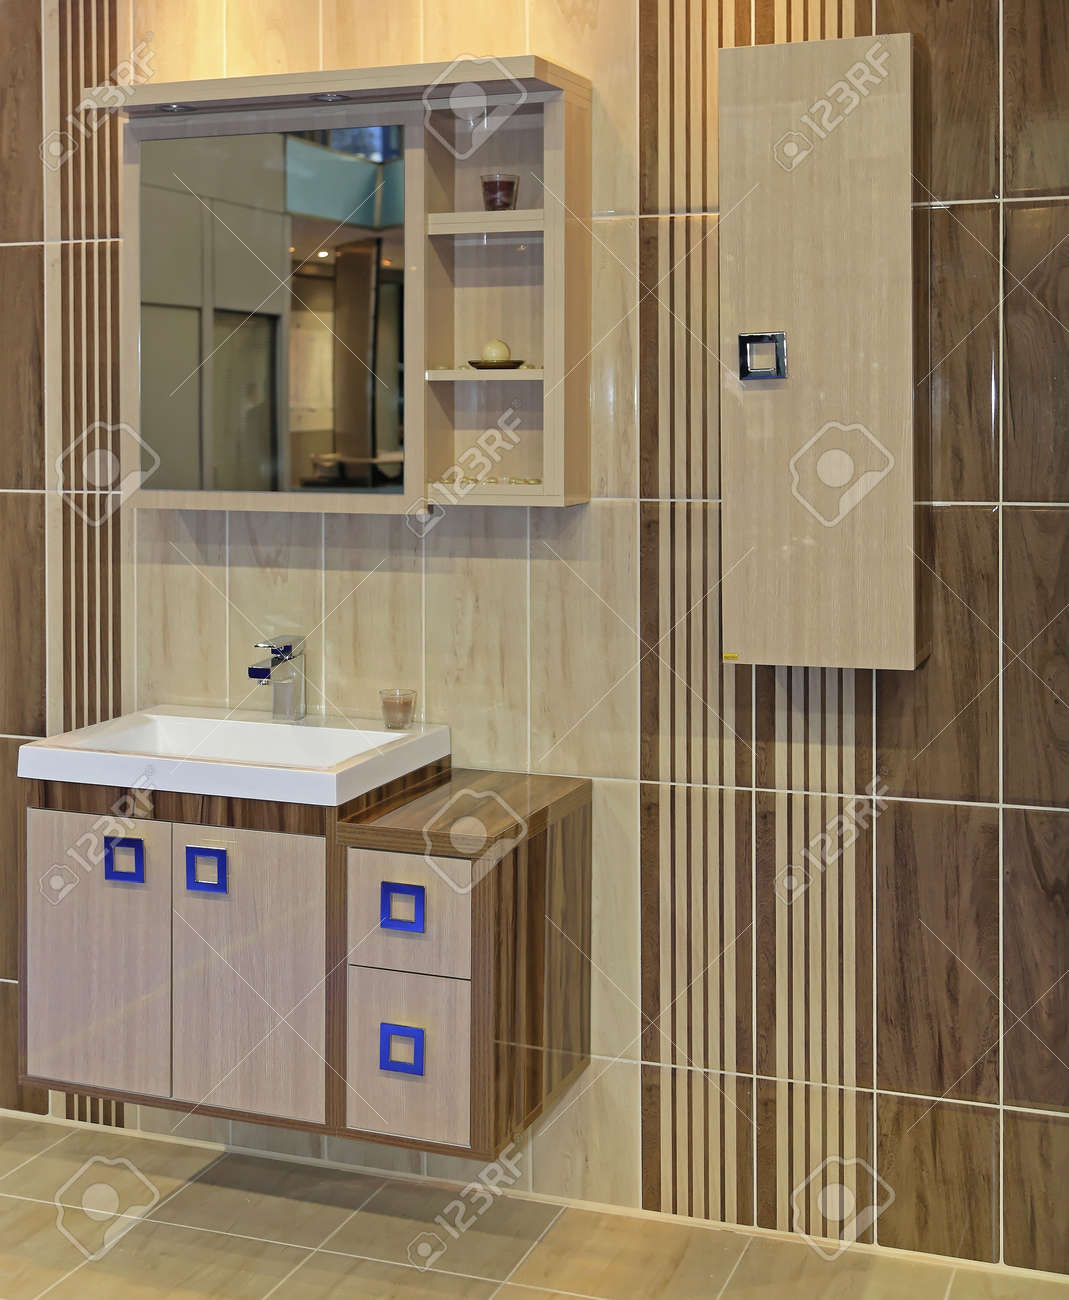 Modern Cabinets In Beige Bathroom Interior Stock Photo Picture And Royalty Free Image Image 145313550